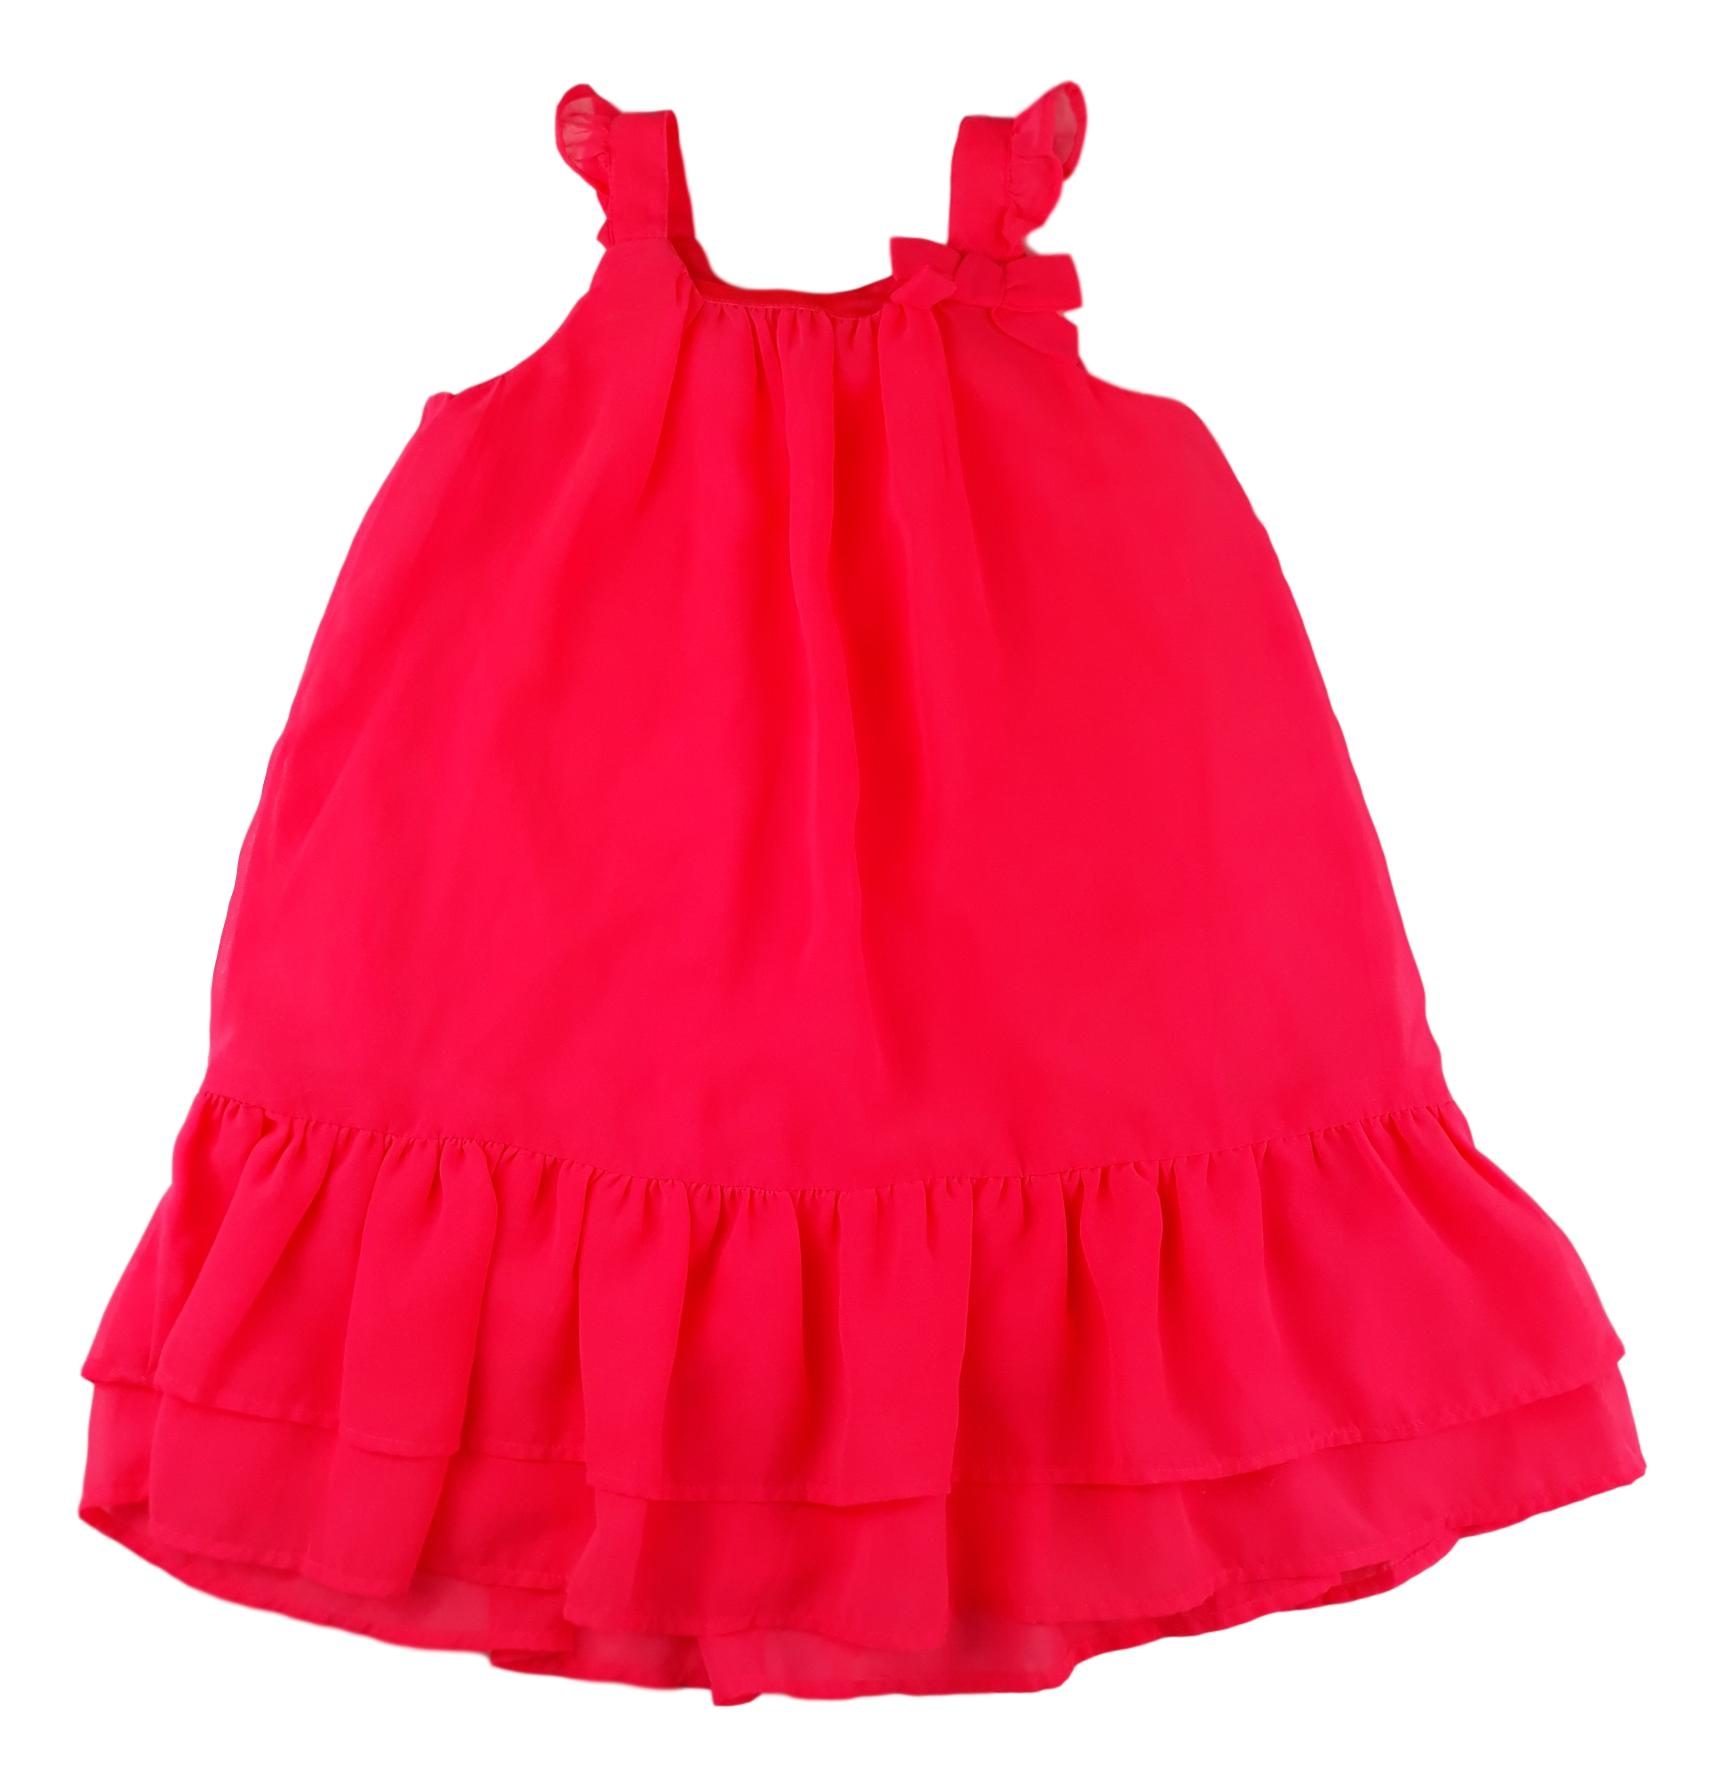 H&M - Taille 3-4 ans